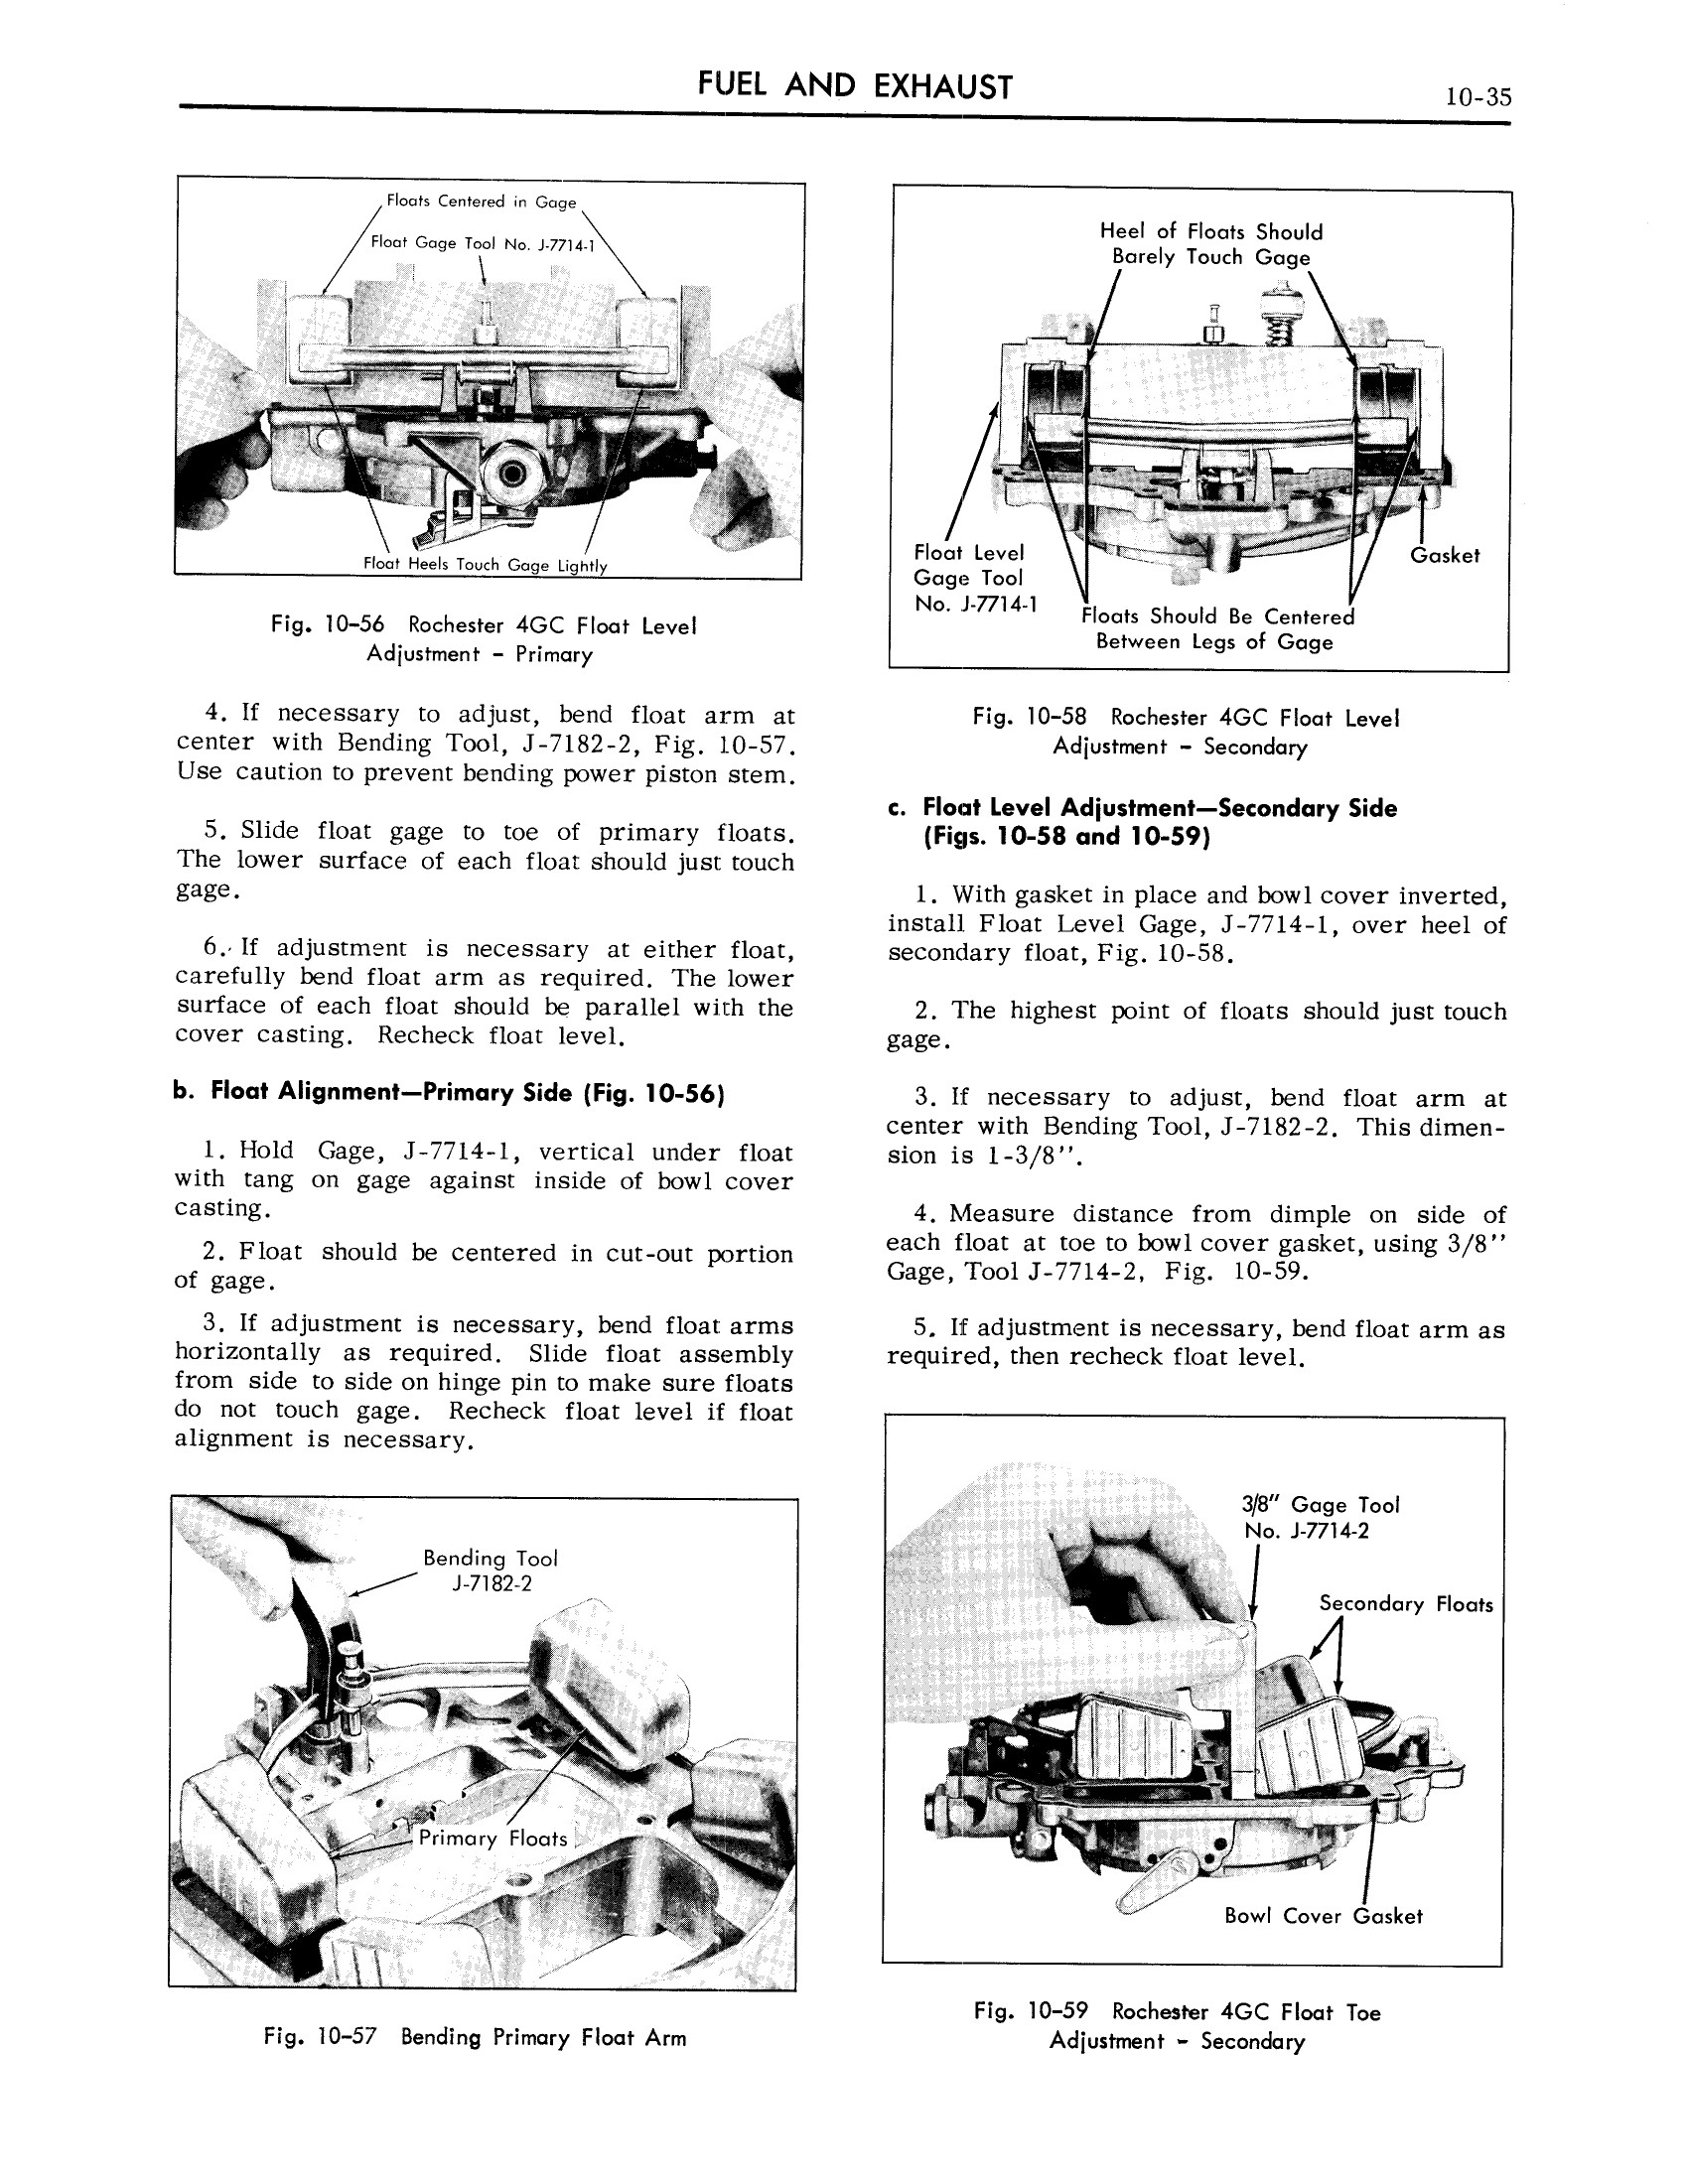 1959 Cadillac Shop Manual- Engine Fuel and Exhaust Page 35